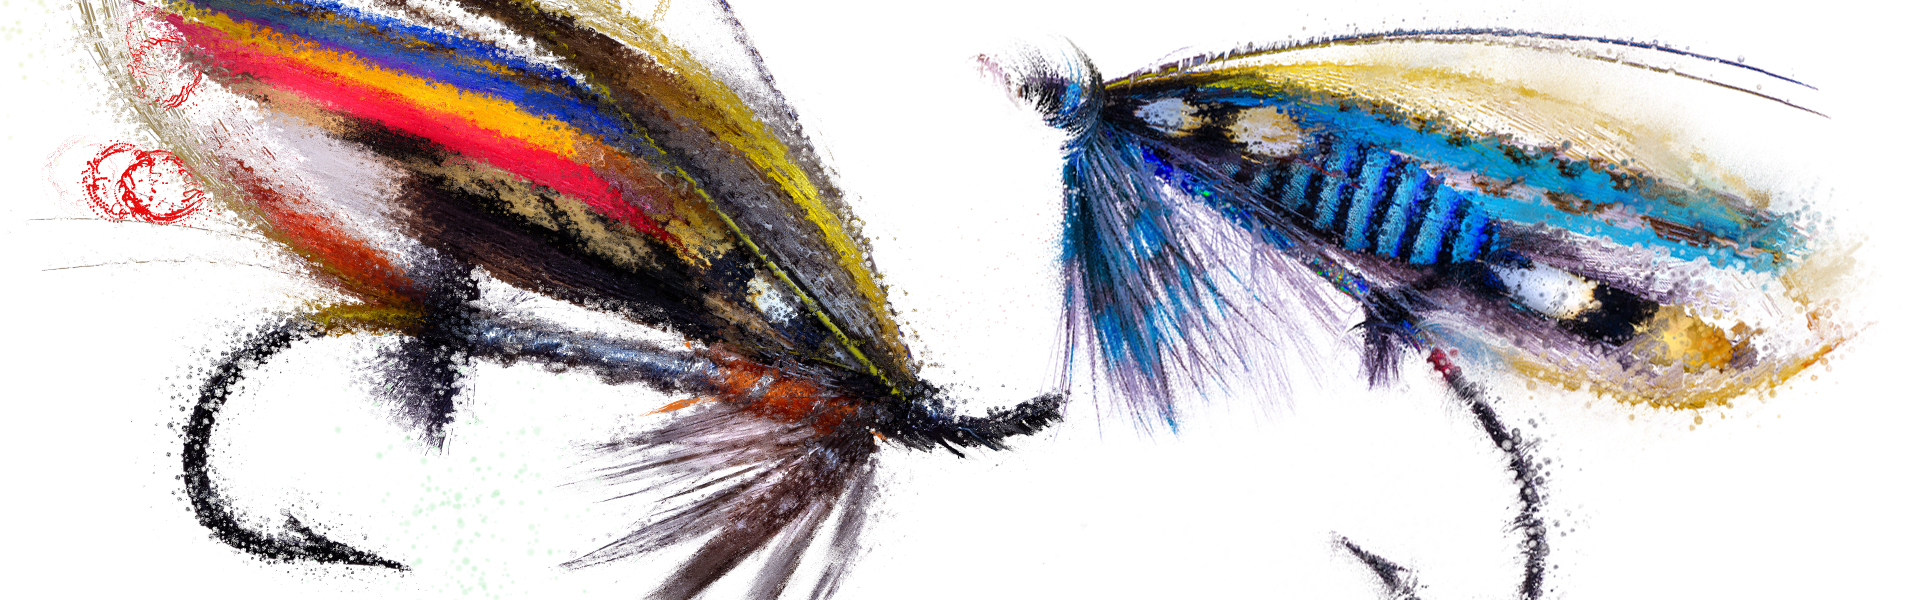 NHS Warrior and Dusty Miller fishing flies